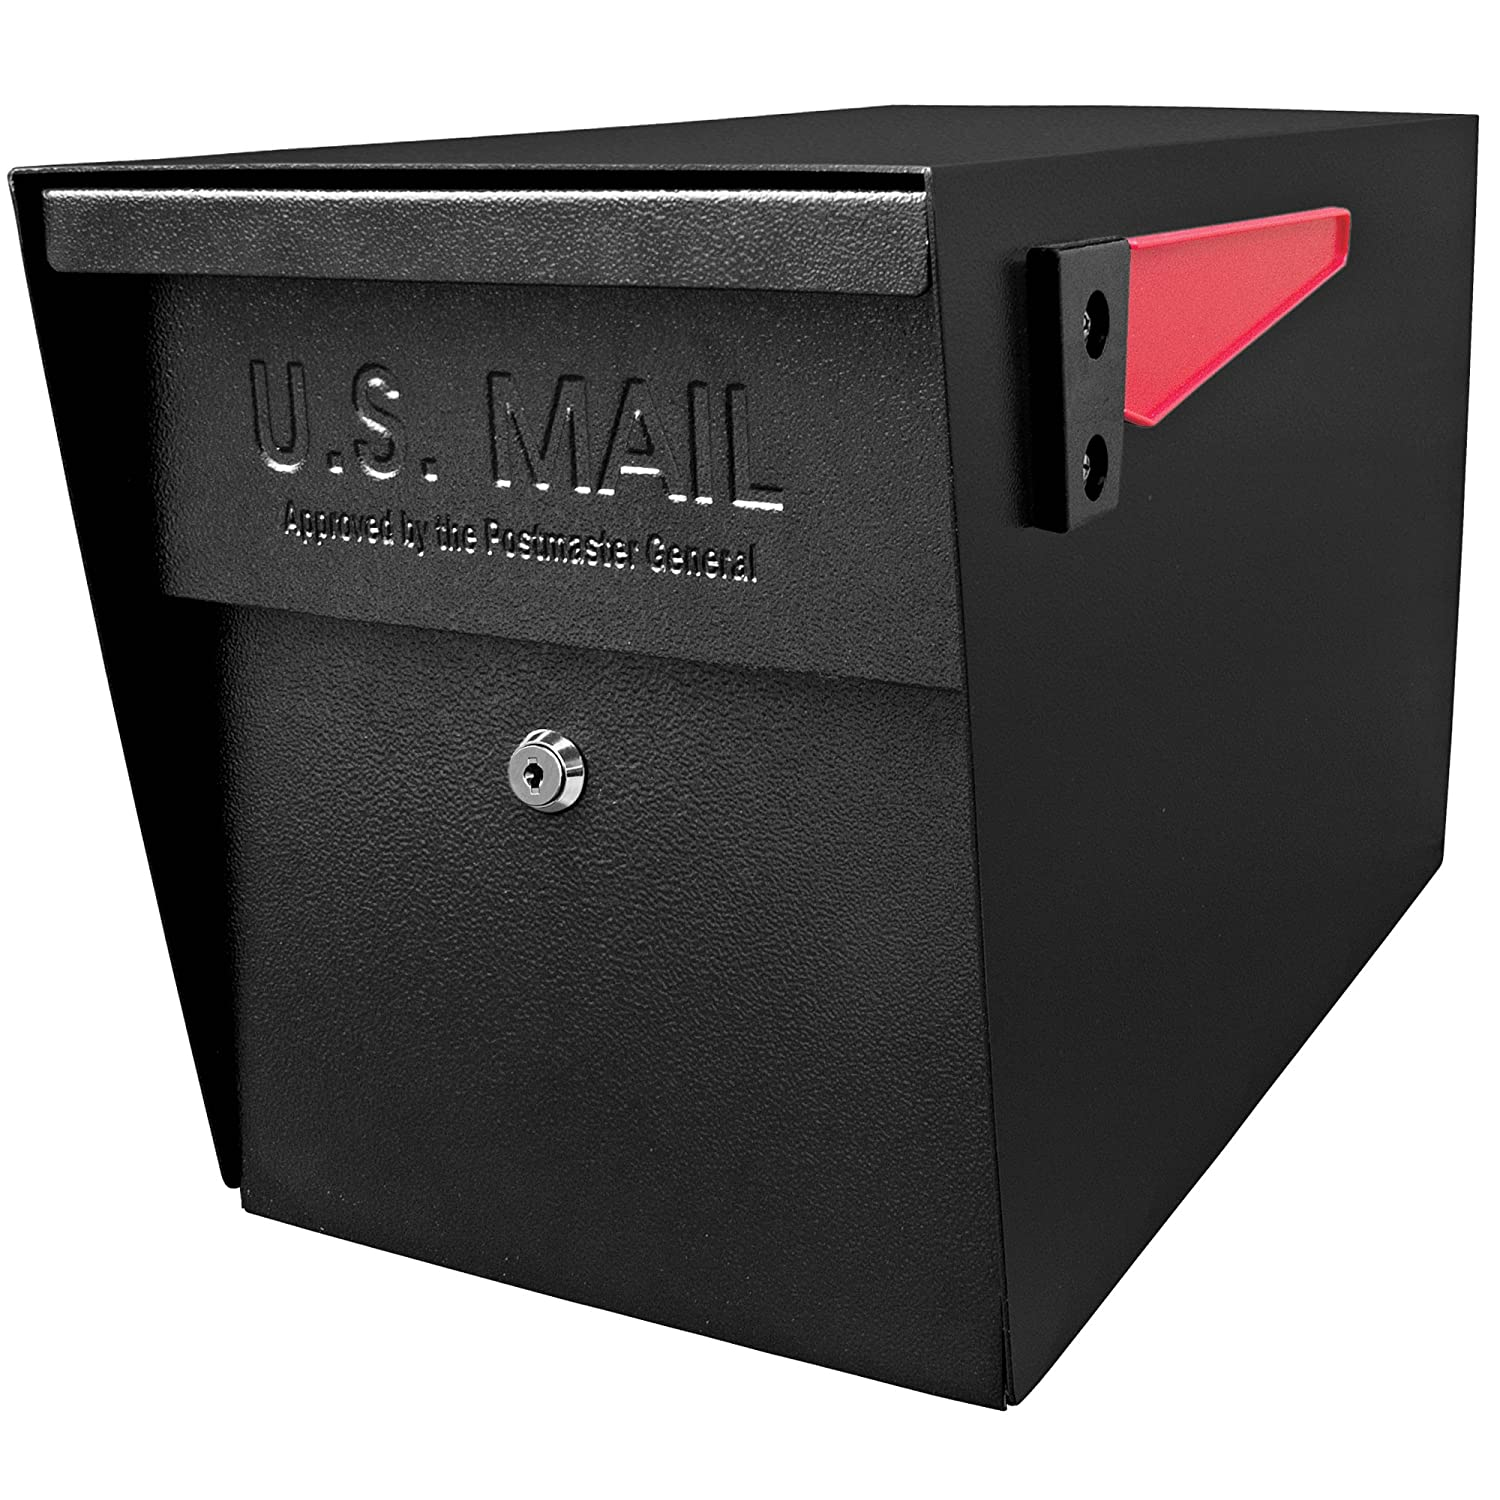 Mail Boss 7106 Curbside Security, Black Locking Mailbox 21 in. D x 11.125 in. W x 13.75 in. H